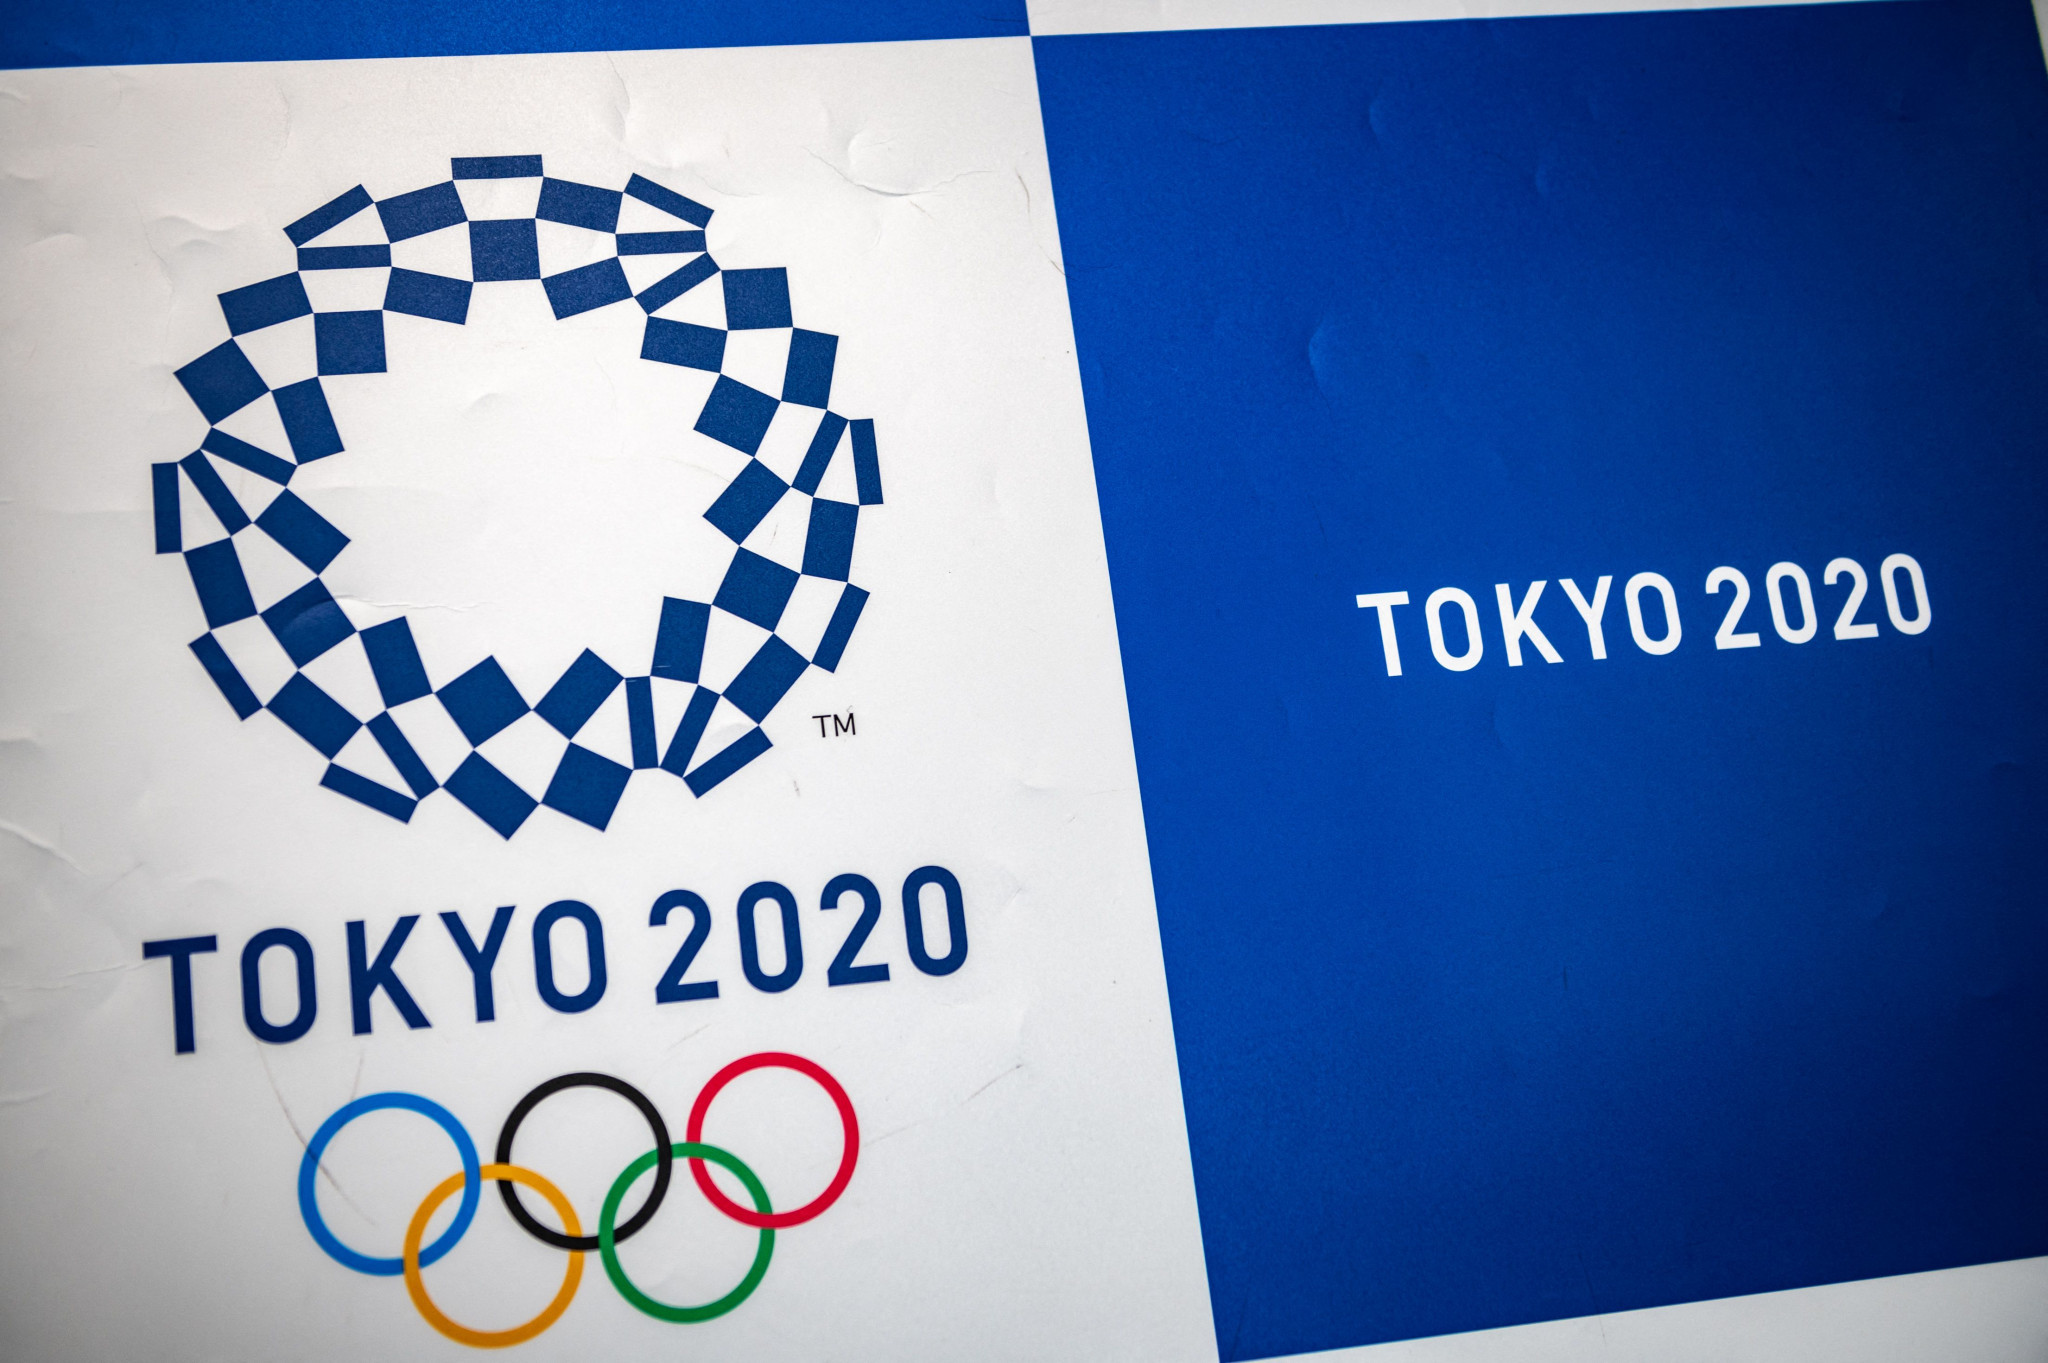 Tokyo 2020 said a condition of the request was that regional medical care would not be impacted ©Getty Images